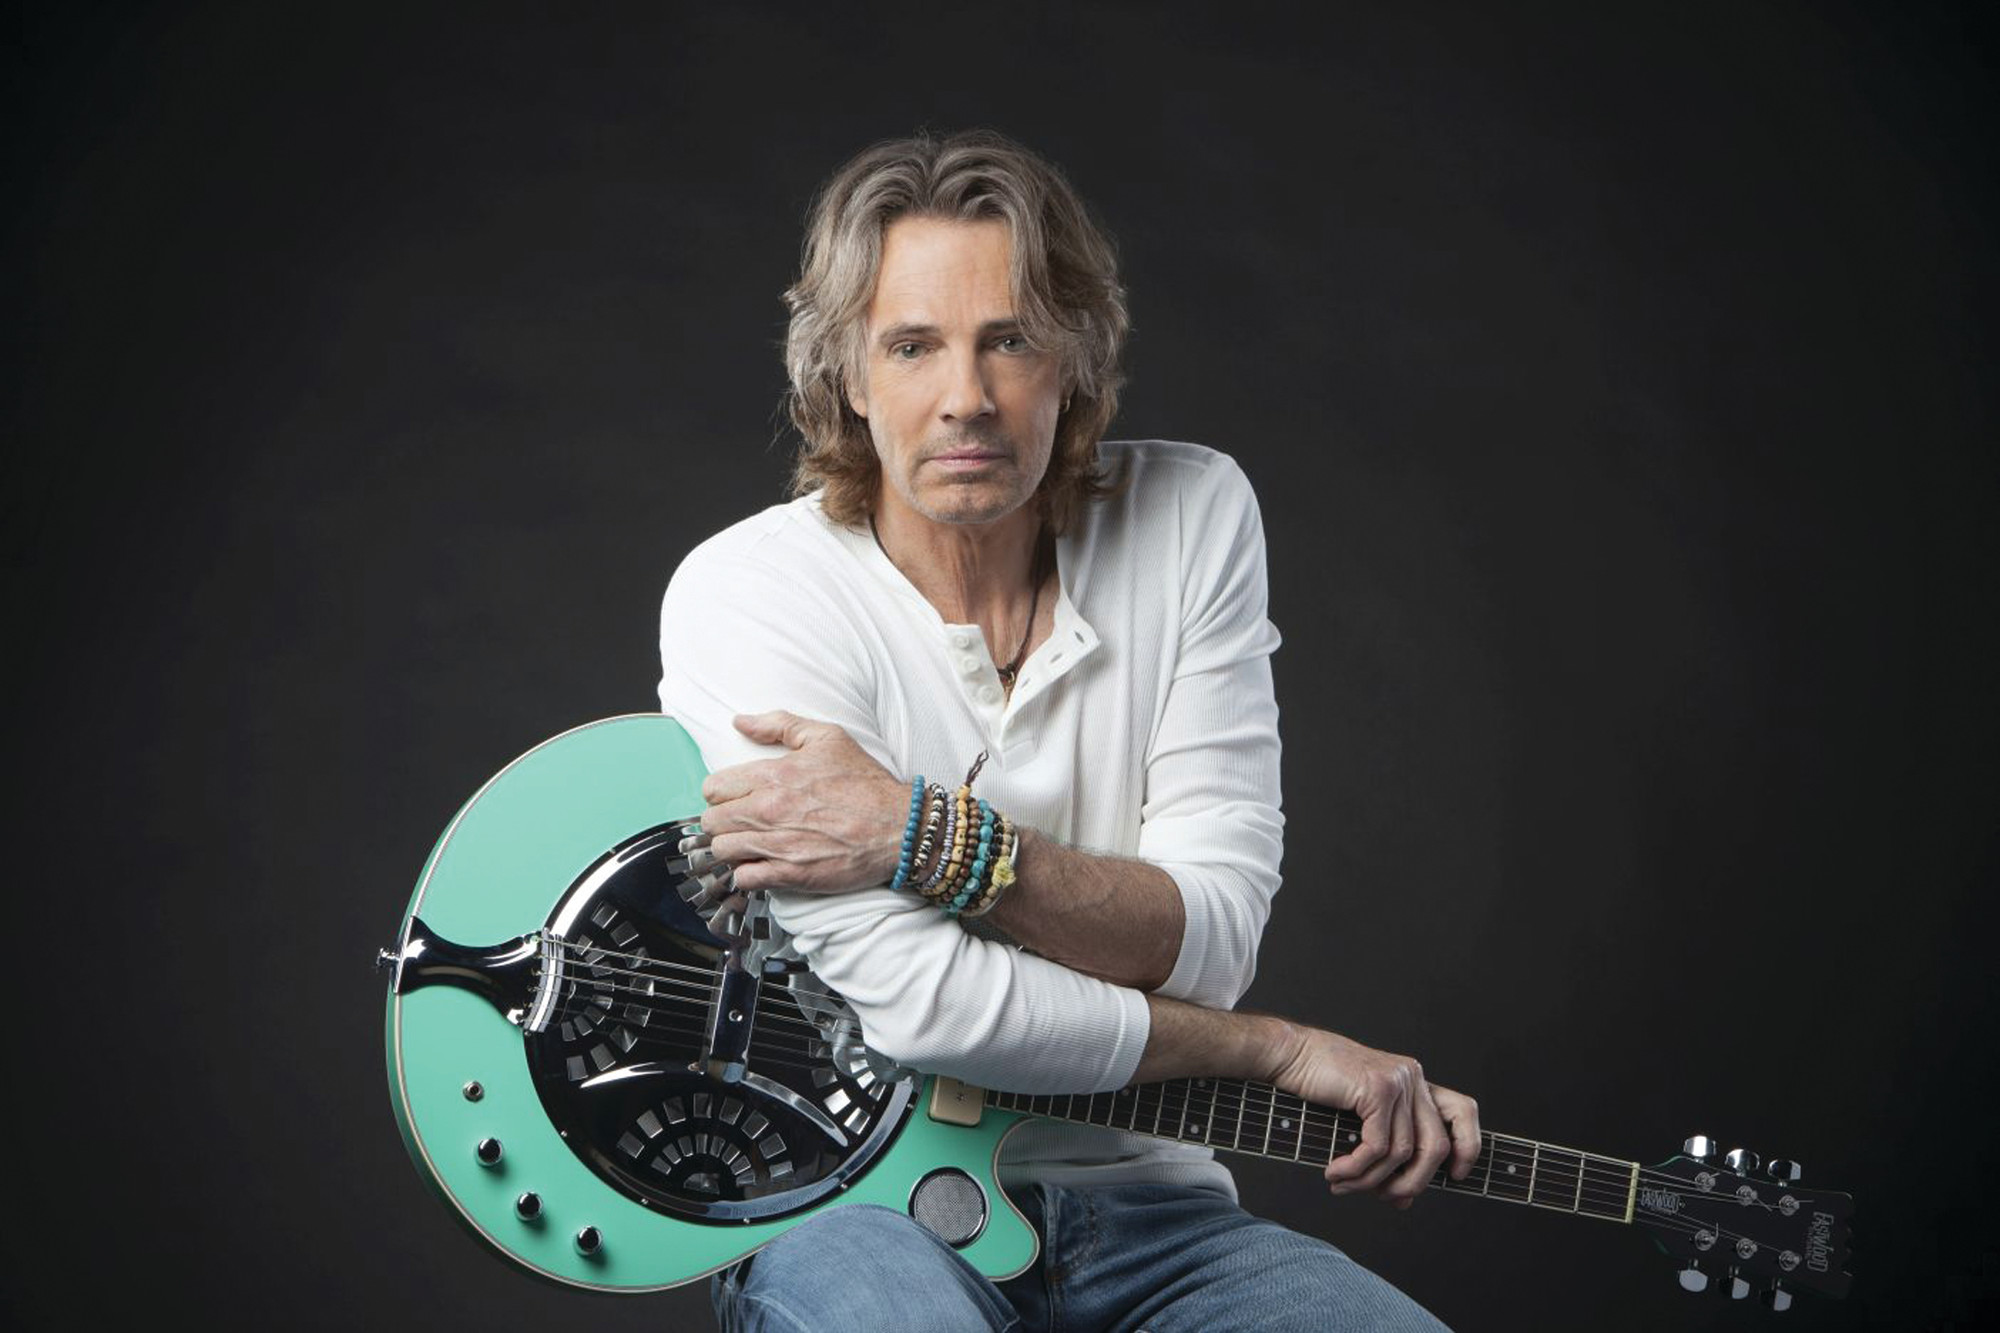 PHOTOS PROVIDED BY PUBLICISTSinger / songwriter Rick Springfield hopes sharing his battles with depression will give others hope.